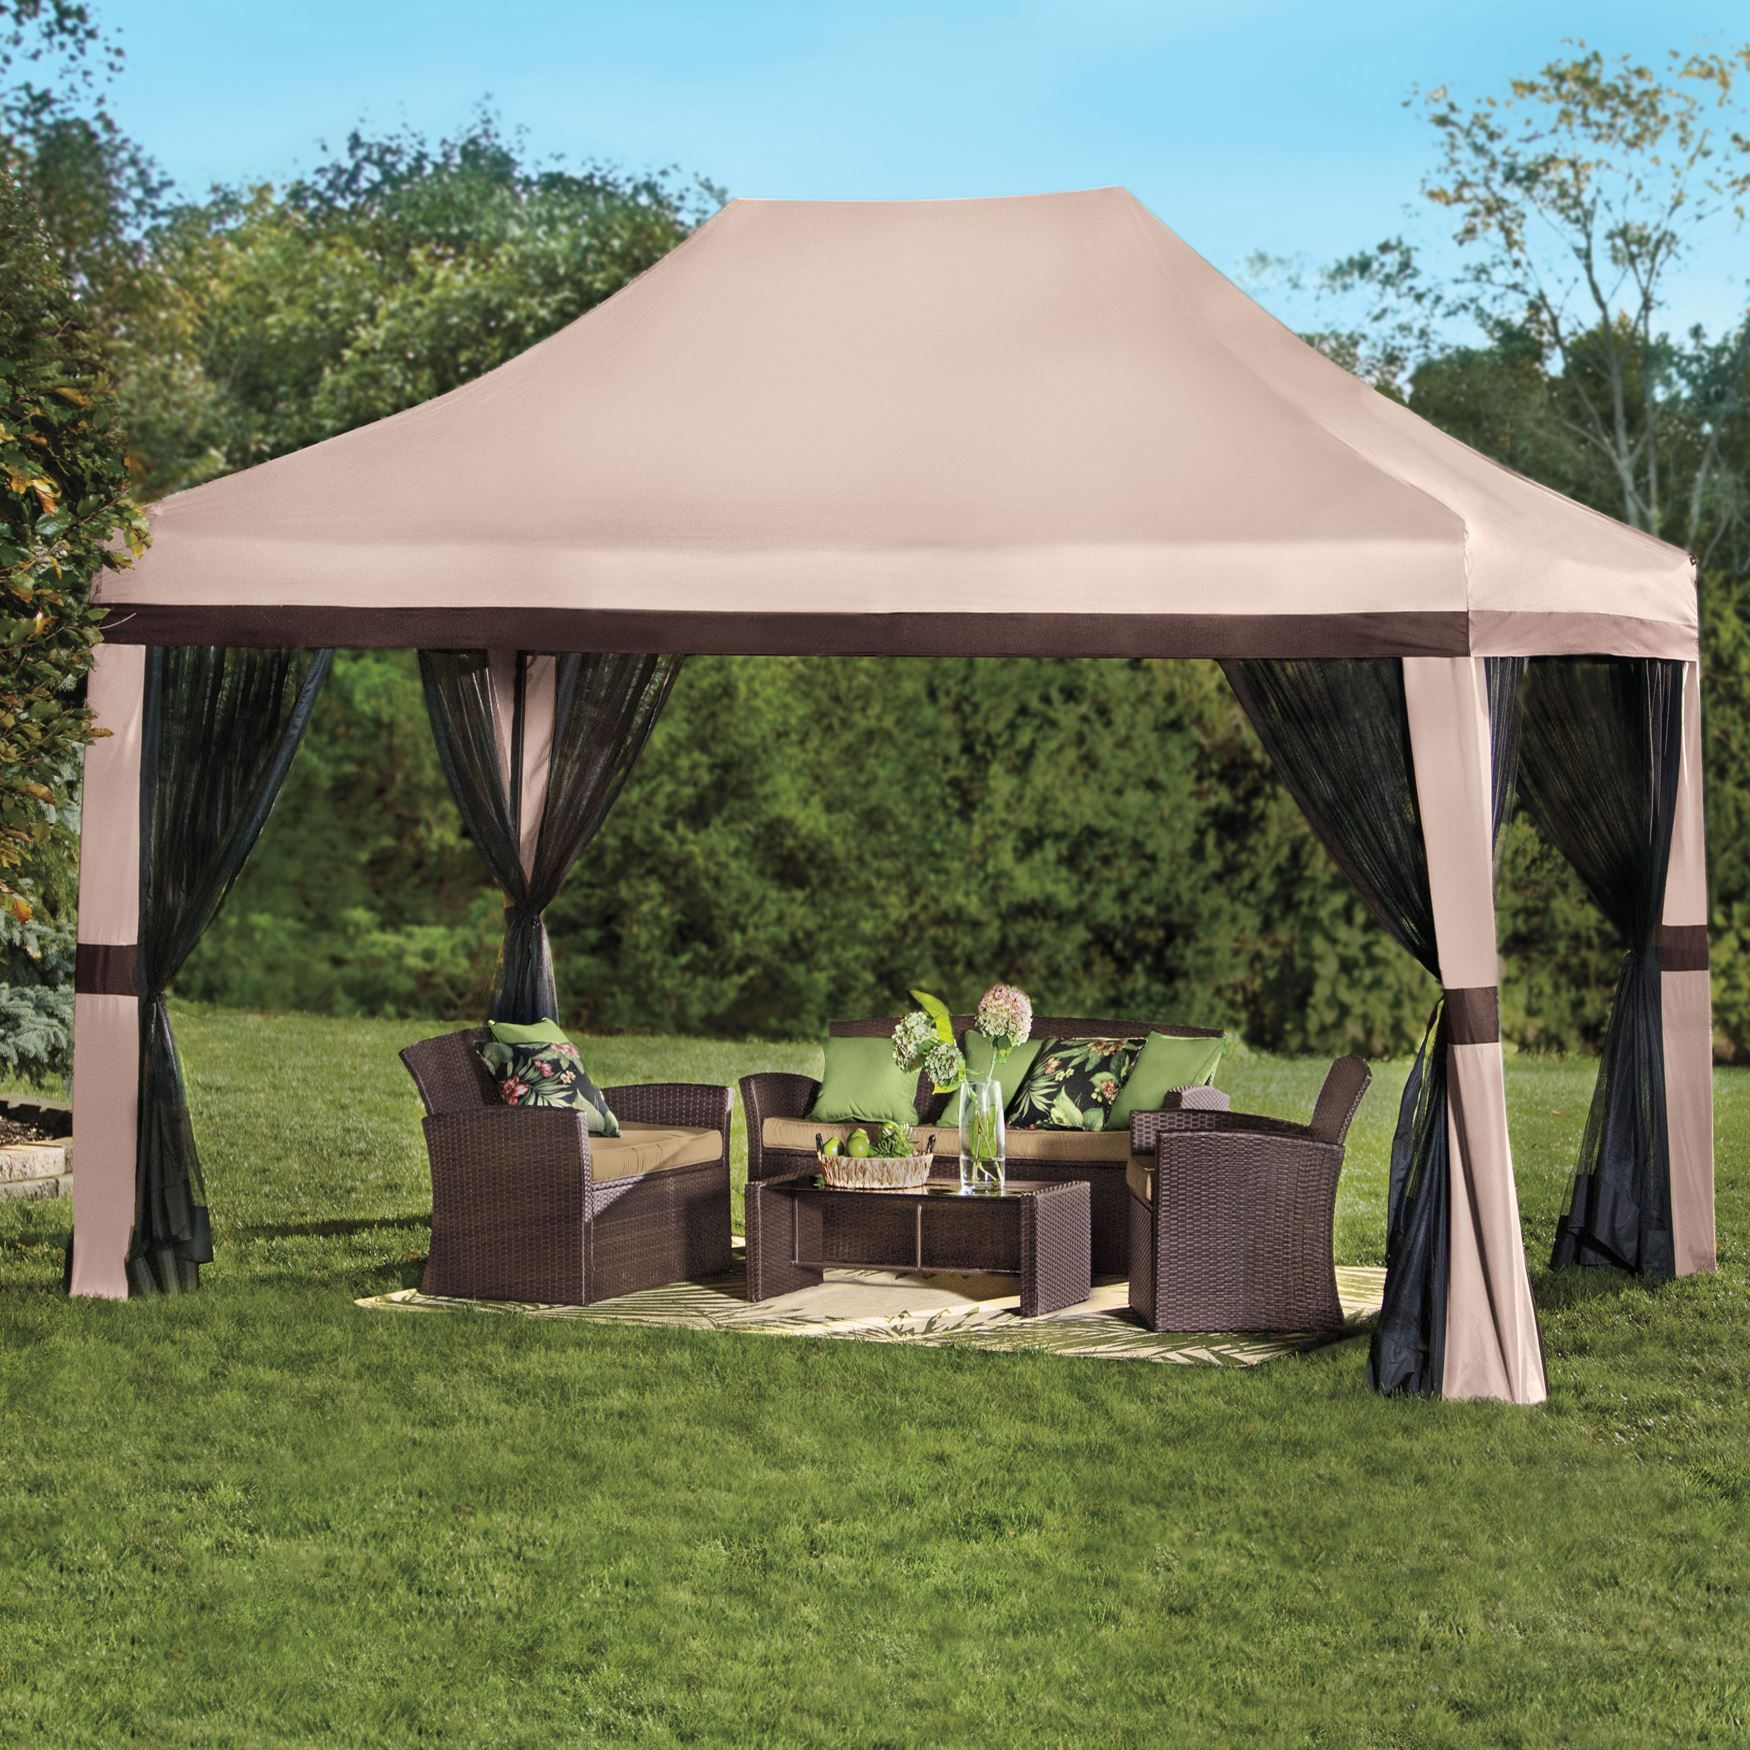 Oversized 10 39 wx15 39 h instant pop up gazebo with screen for Backyard screen house